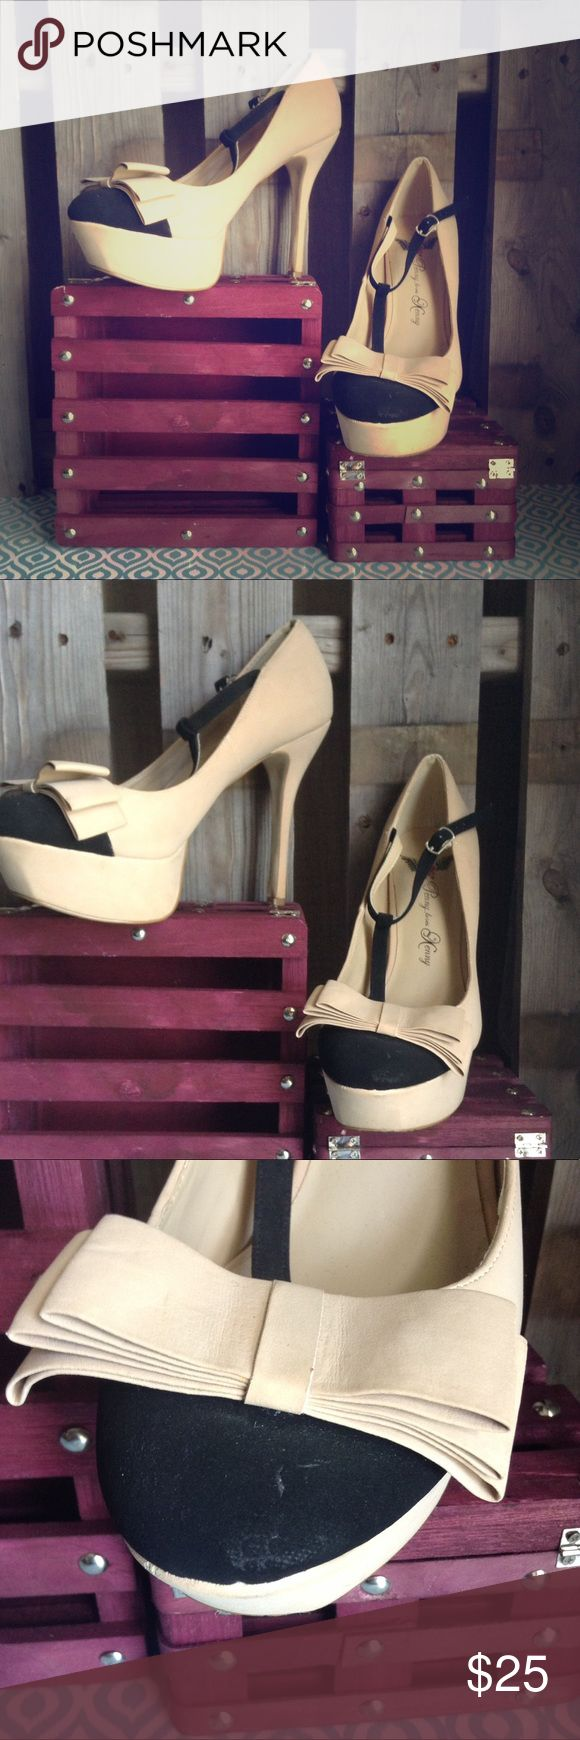 Penny loves Kenny bow t-strap platform stiletto Gorgeous but well loved PLK round bowed toe platform heel. All wear pictured. Blush pink/beige and black. Perfect neutral pump. 8.5 Penny loves Kenny Shoes Heels